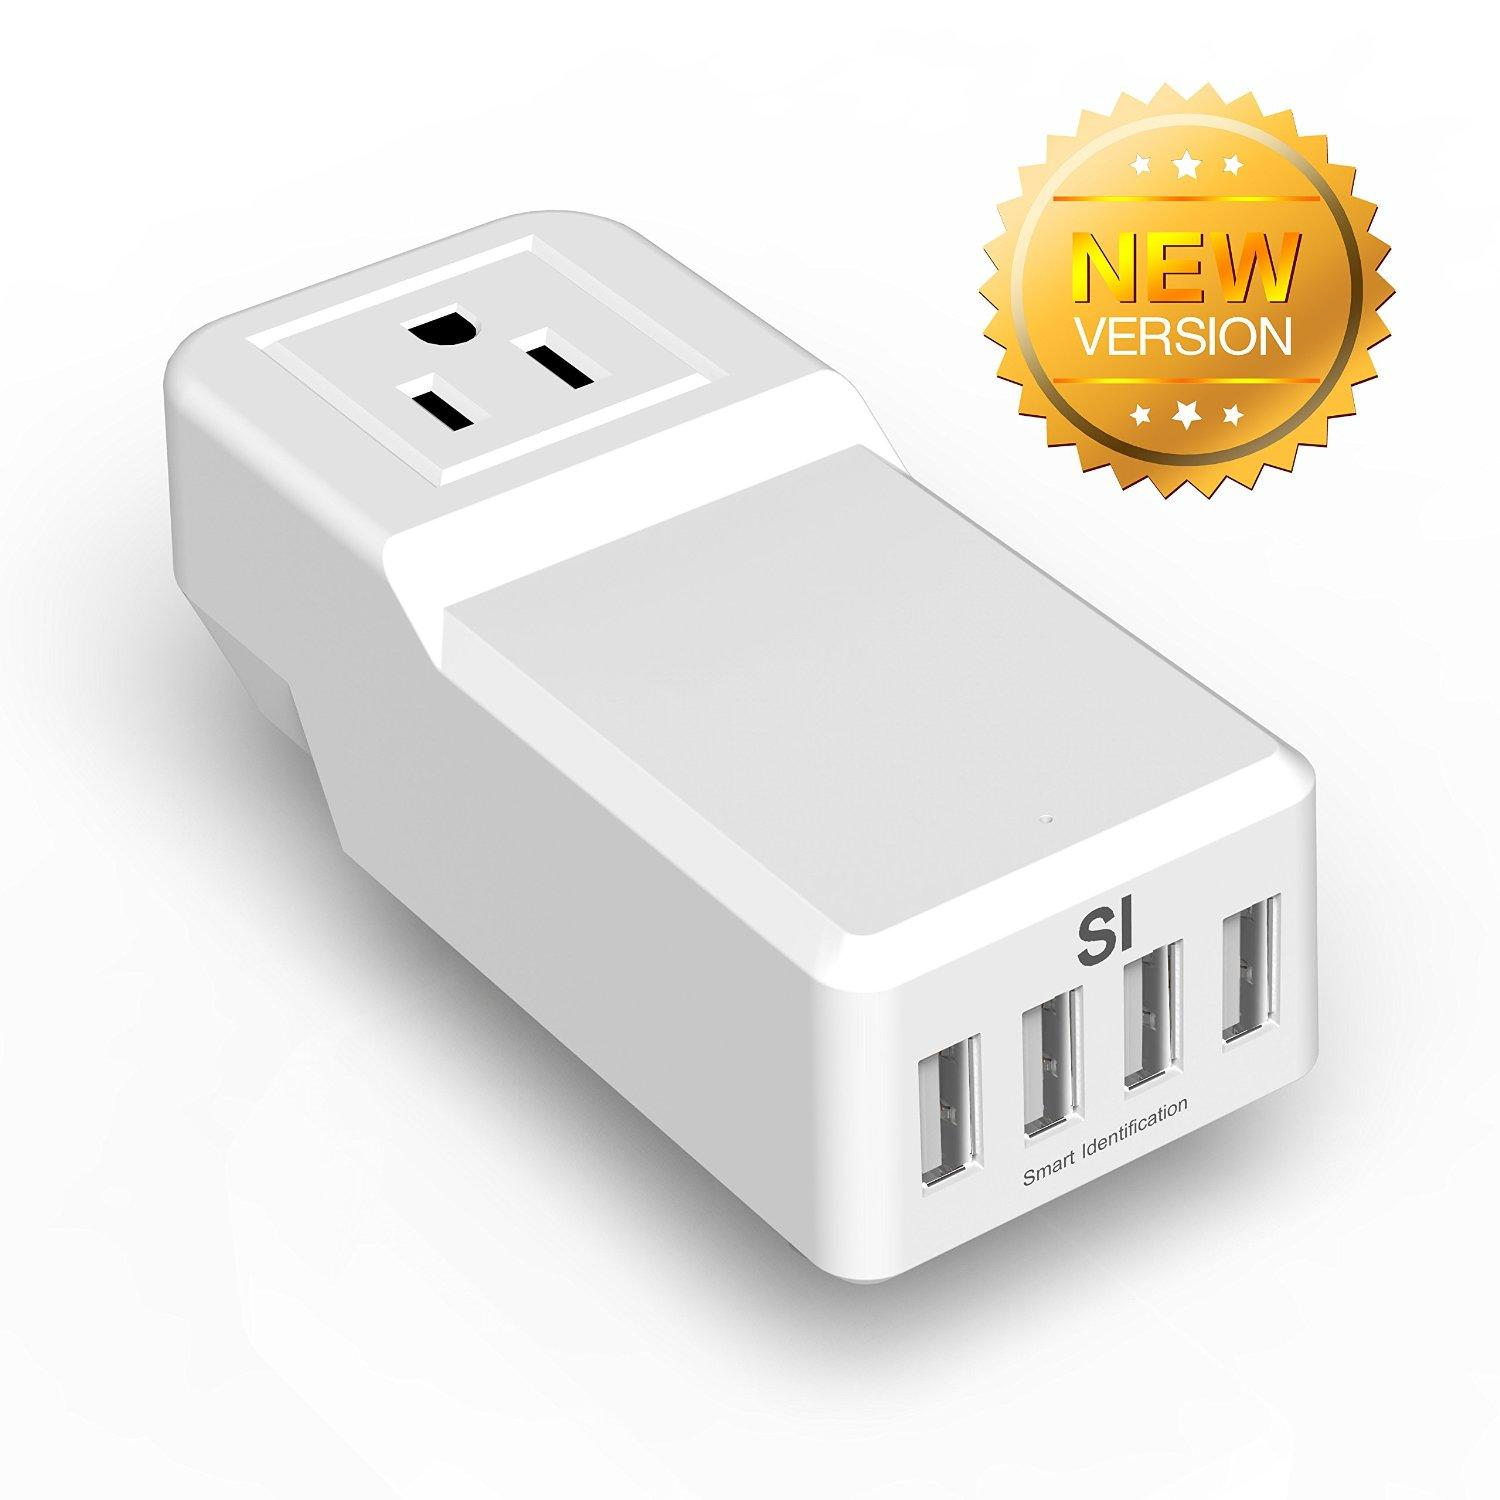 Levin™ 25W 5A Mini USB Travel Charger Surge Protector with 4 USB Ports